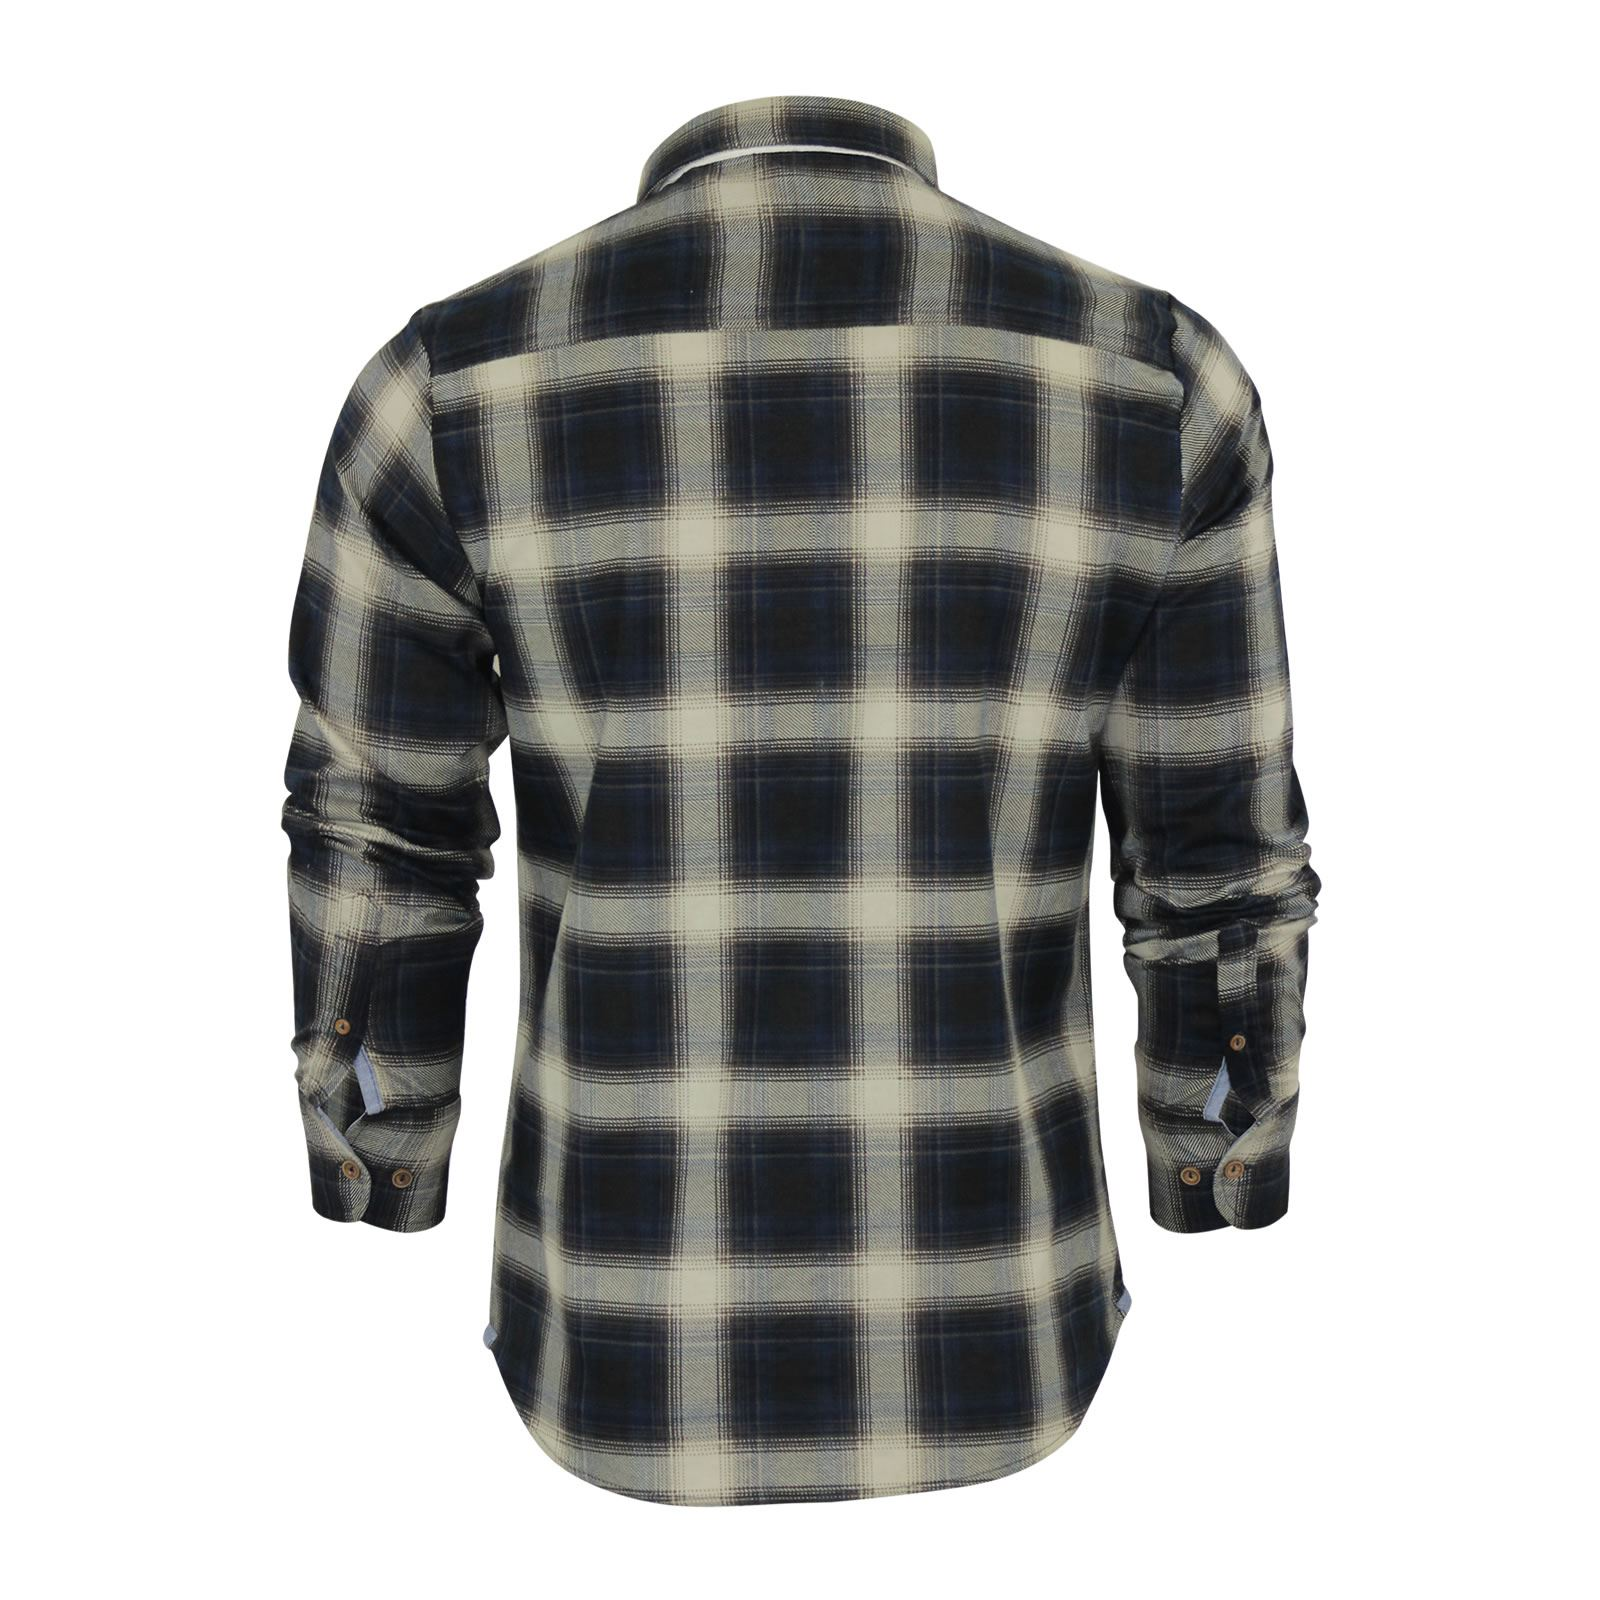 Mens-Check-Shirt-Brave-Soul-Flannel-Brushed-Cotton-Long-Sleeve-Casual-Top thumbnail 15